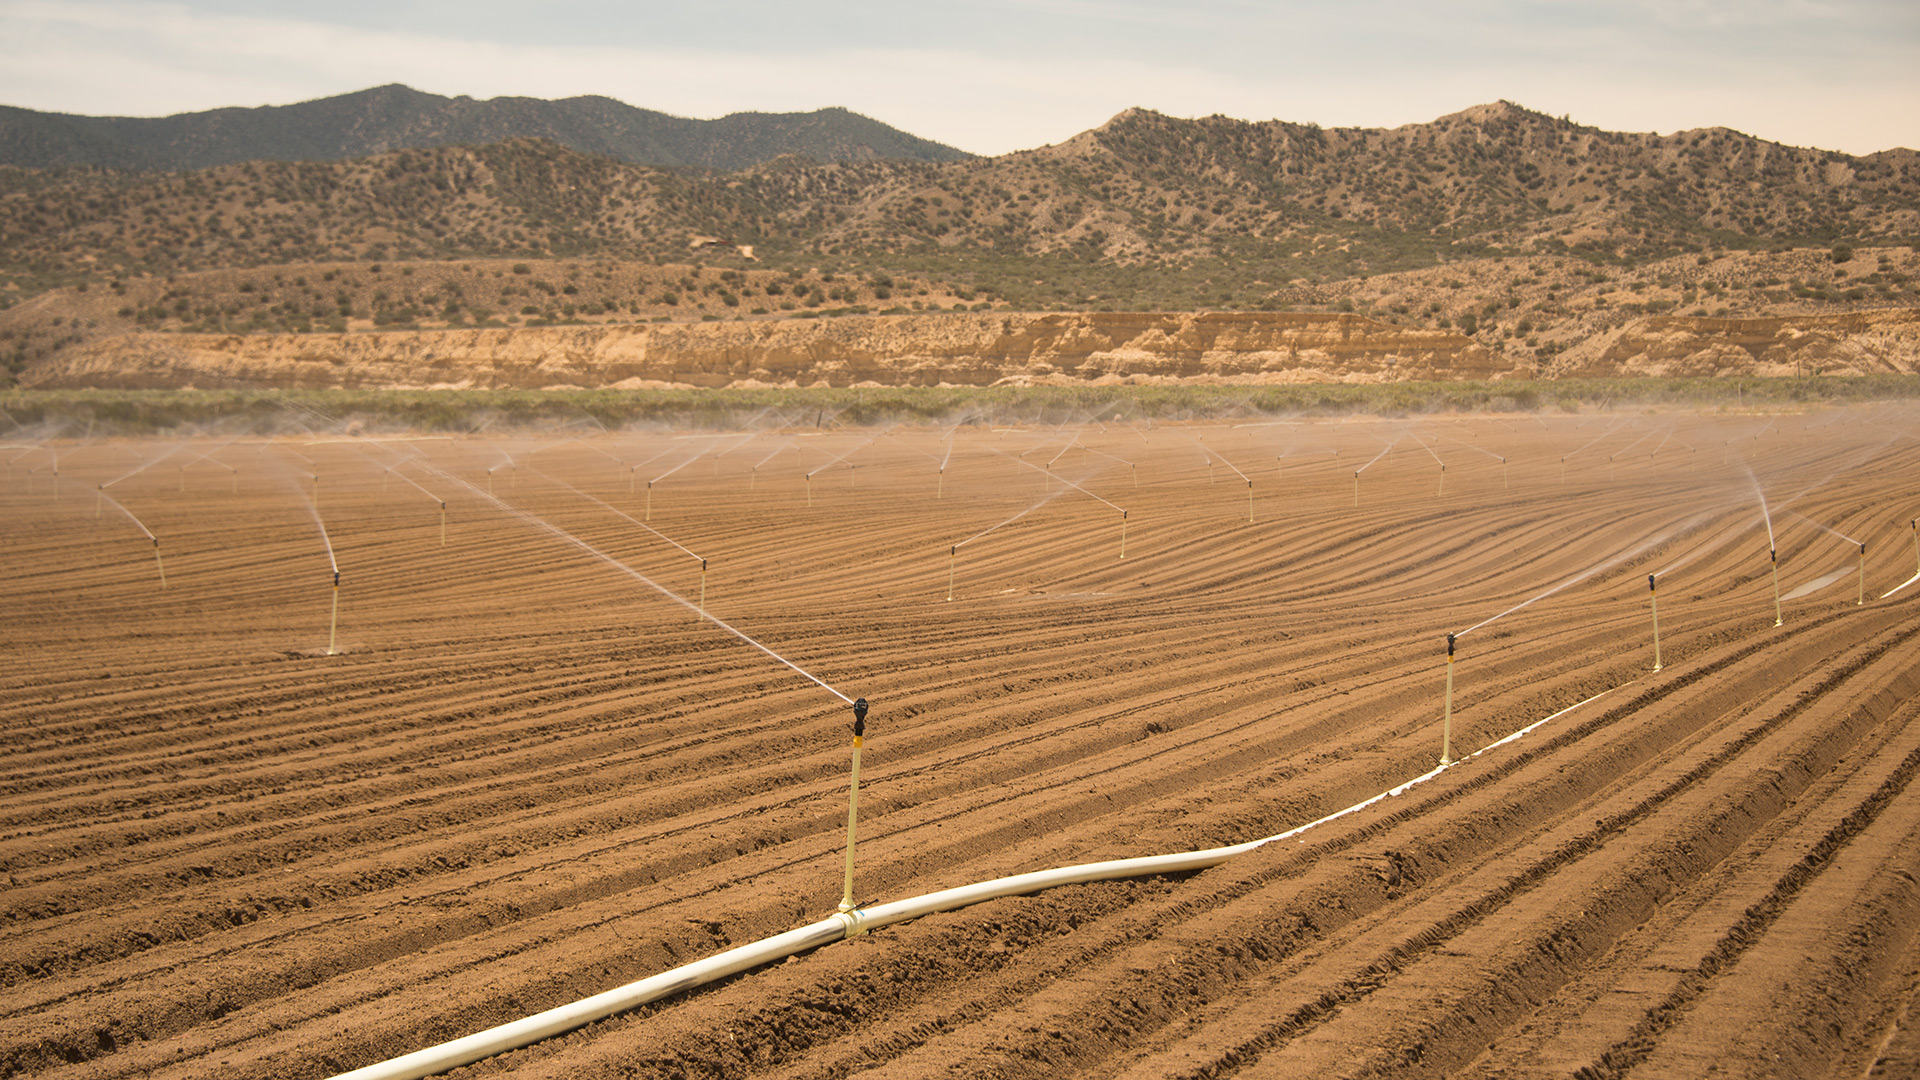 Fields being irrigated on the edge of the desert in the Cuyama Valley